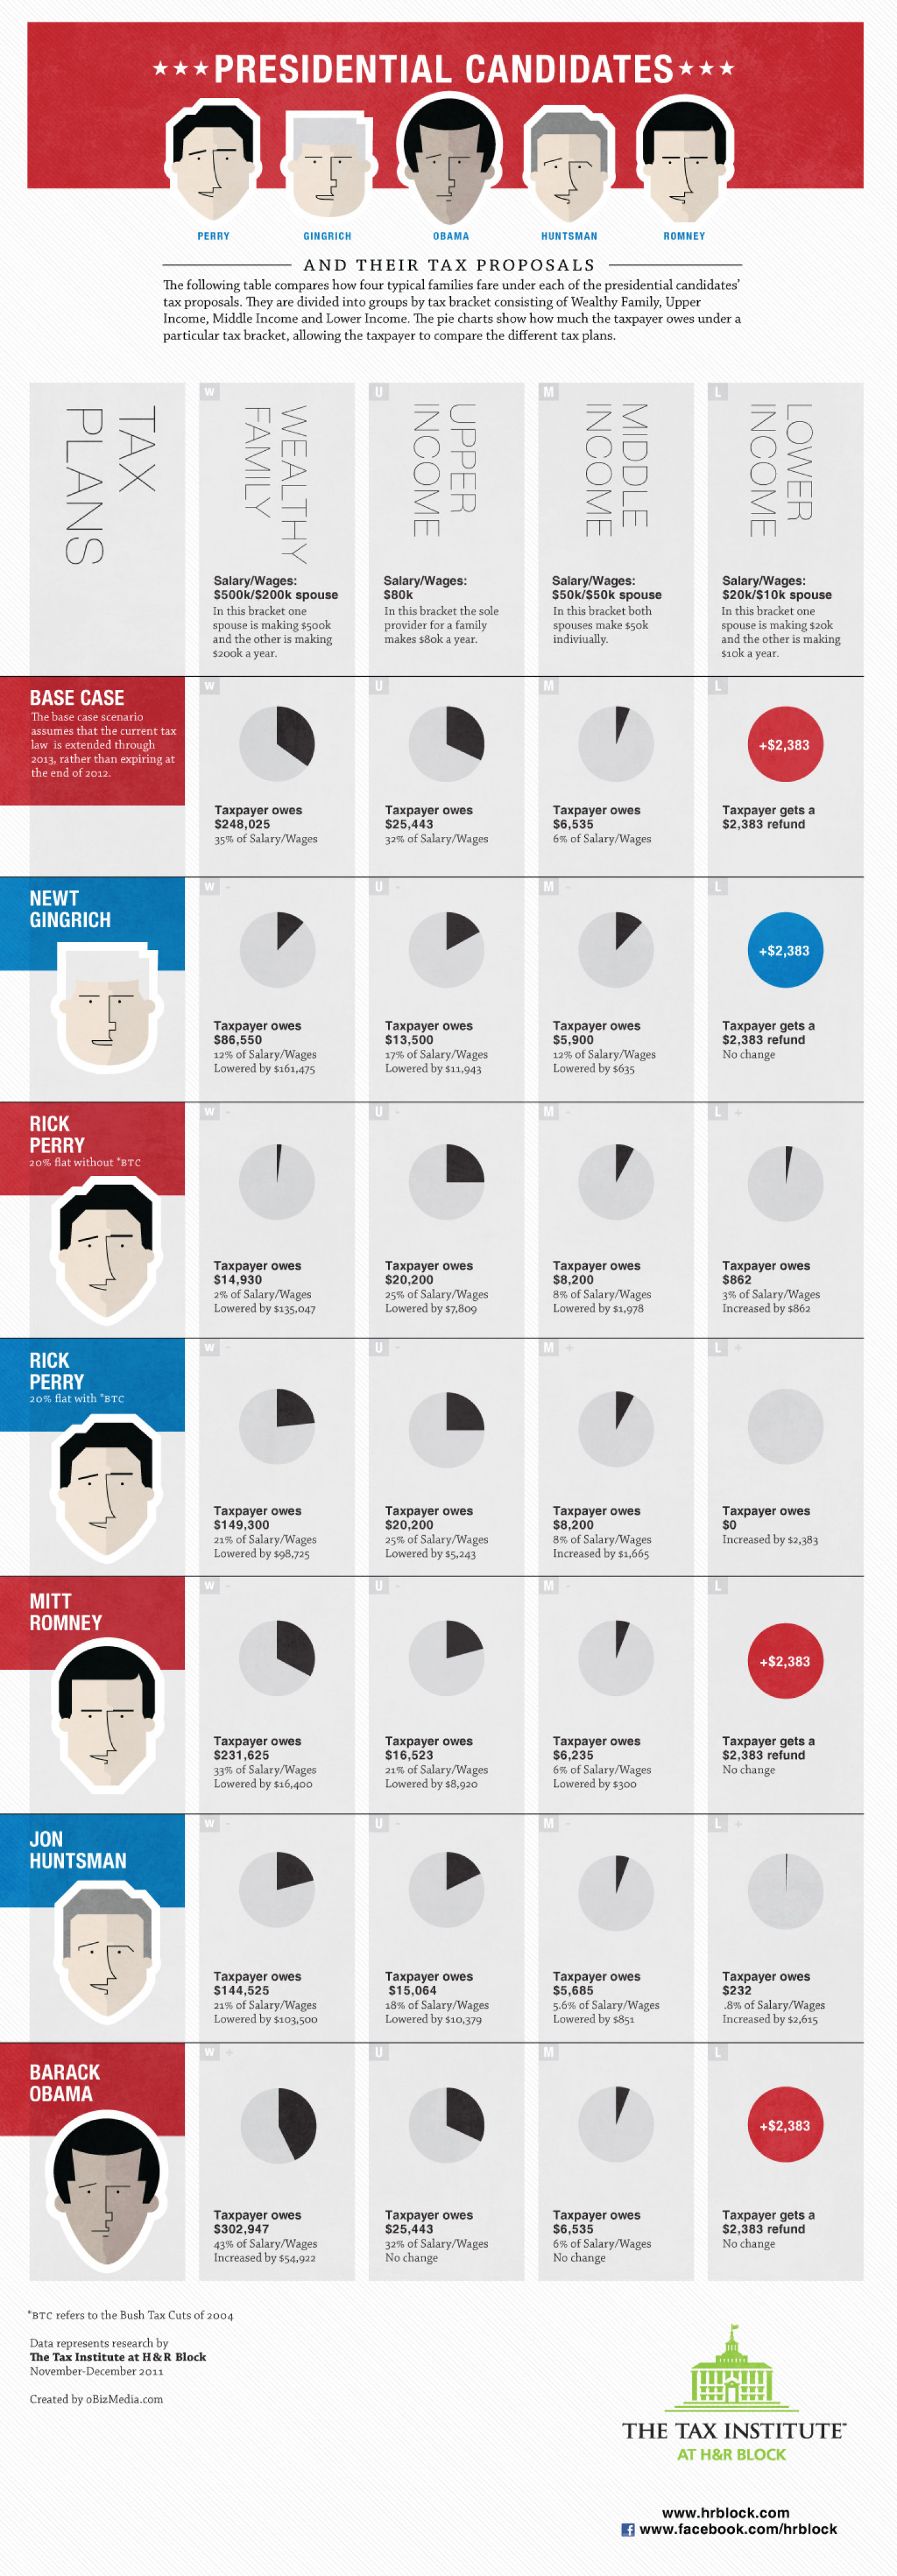 Presidential Candidates and Their Tax Proposals Infographic